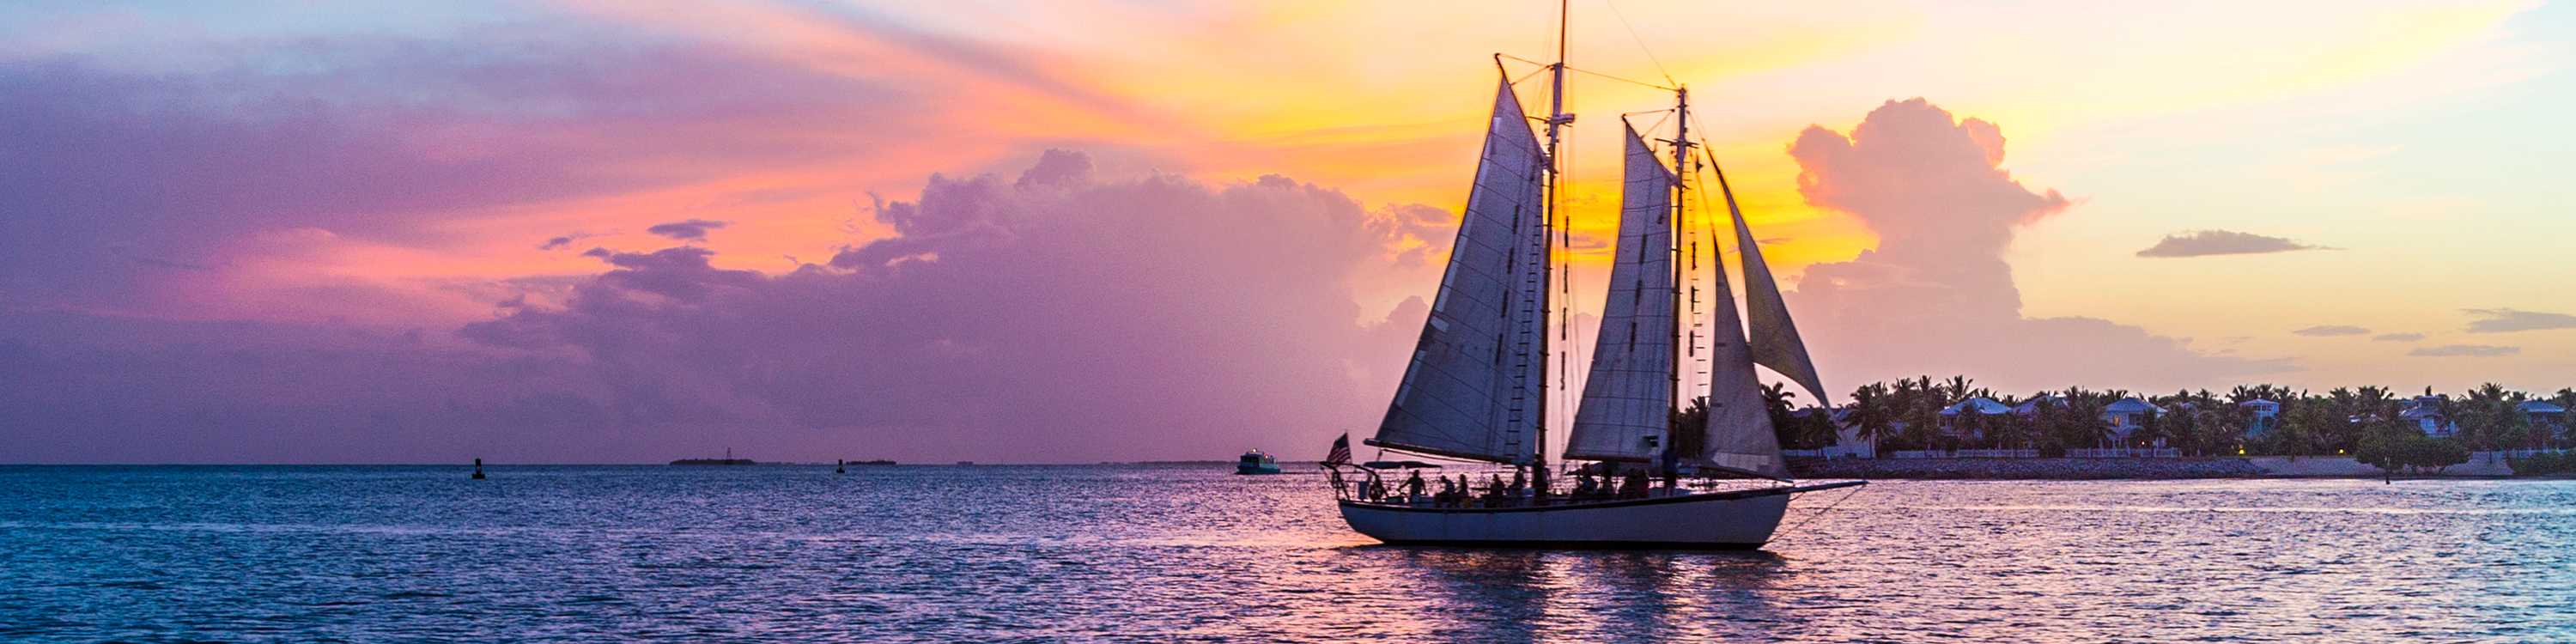 Photo of a sailboat on calm water in front of a sunset